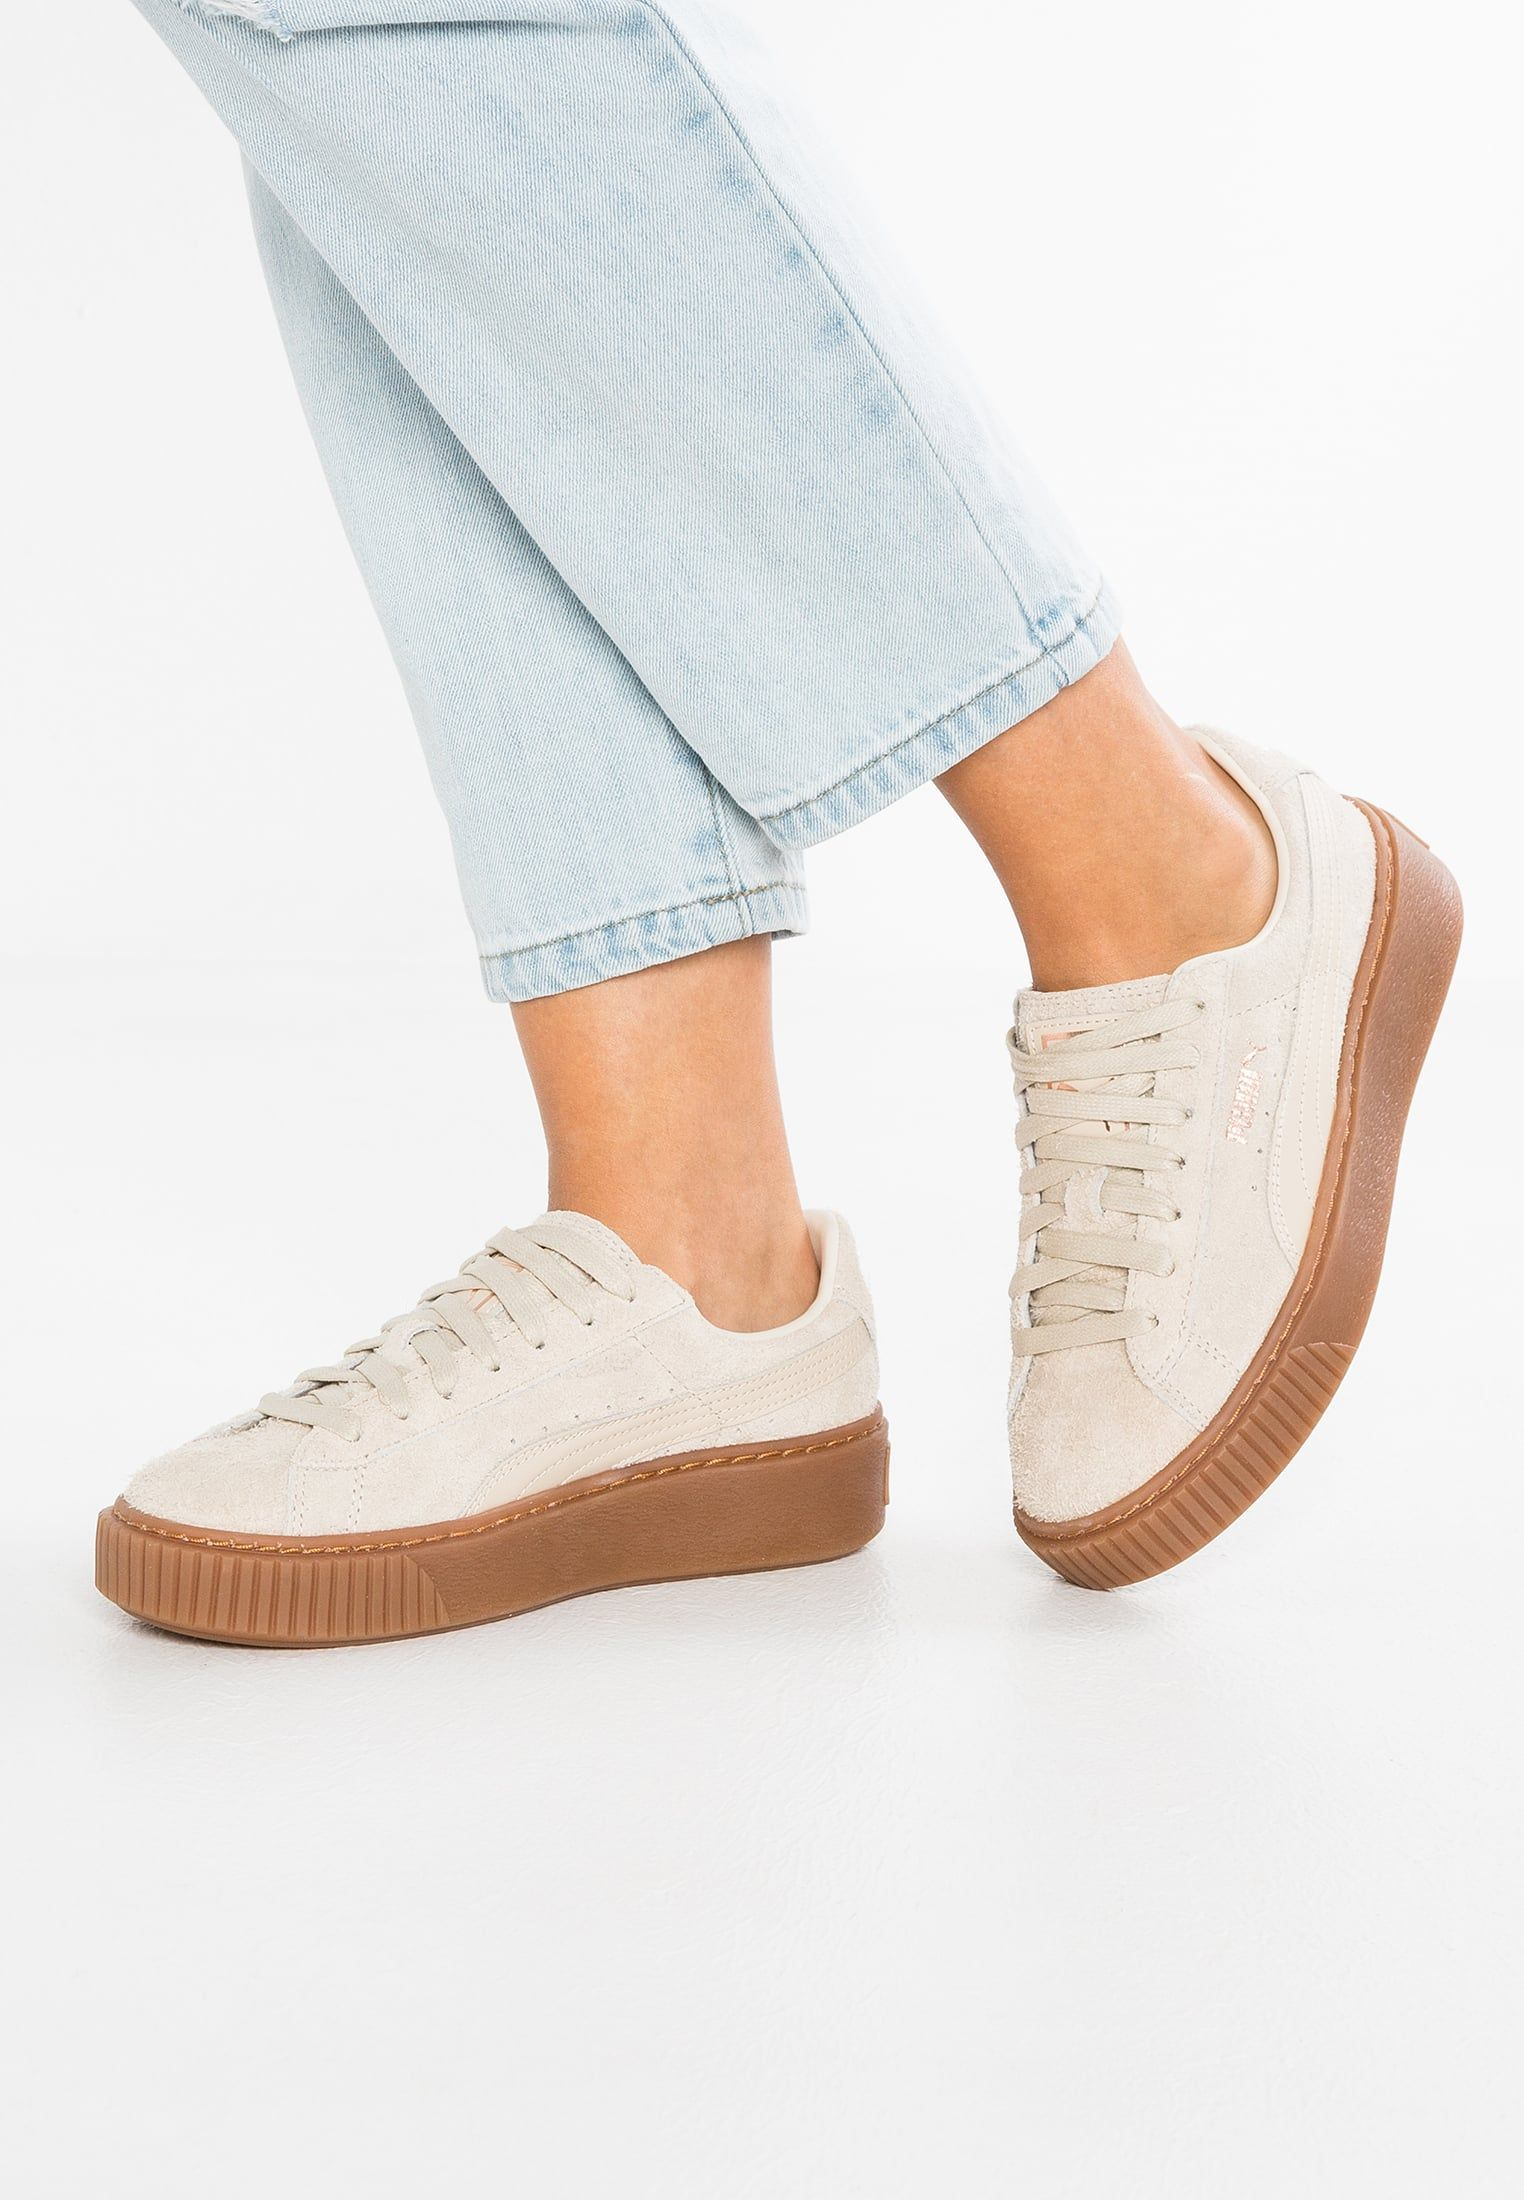 Suede Low Gold Oatmealrose 2019 Platform In Sneaker Elemental gYvfy6b7